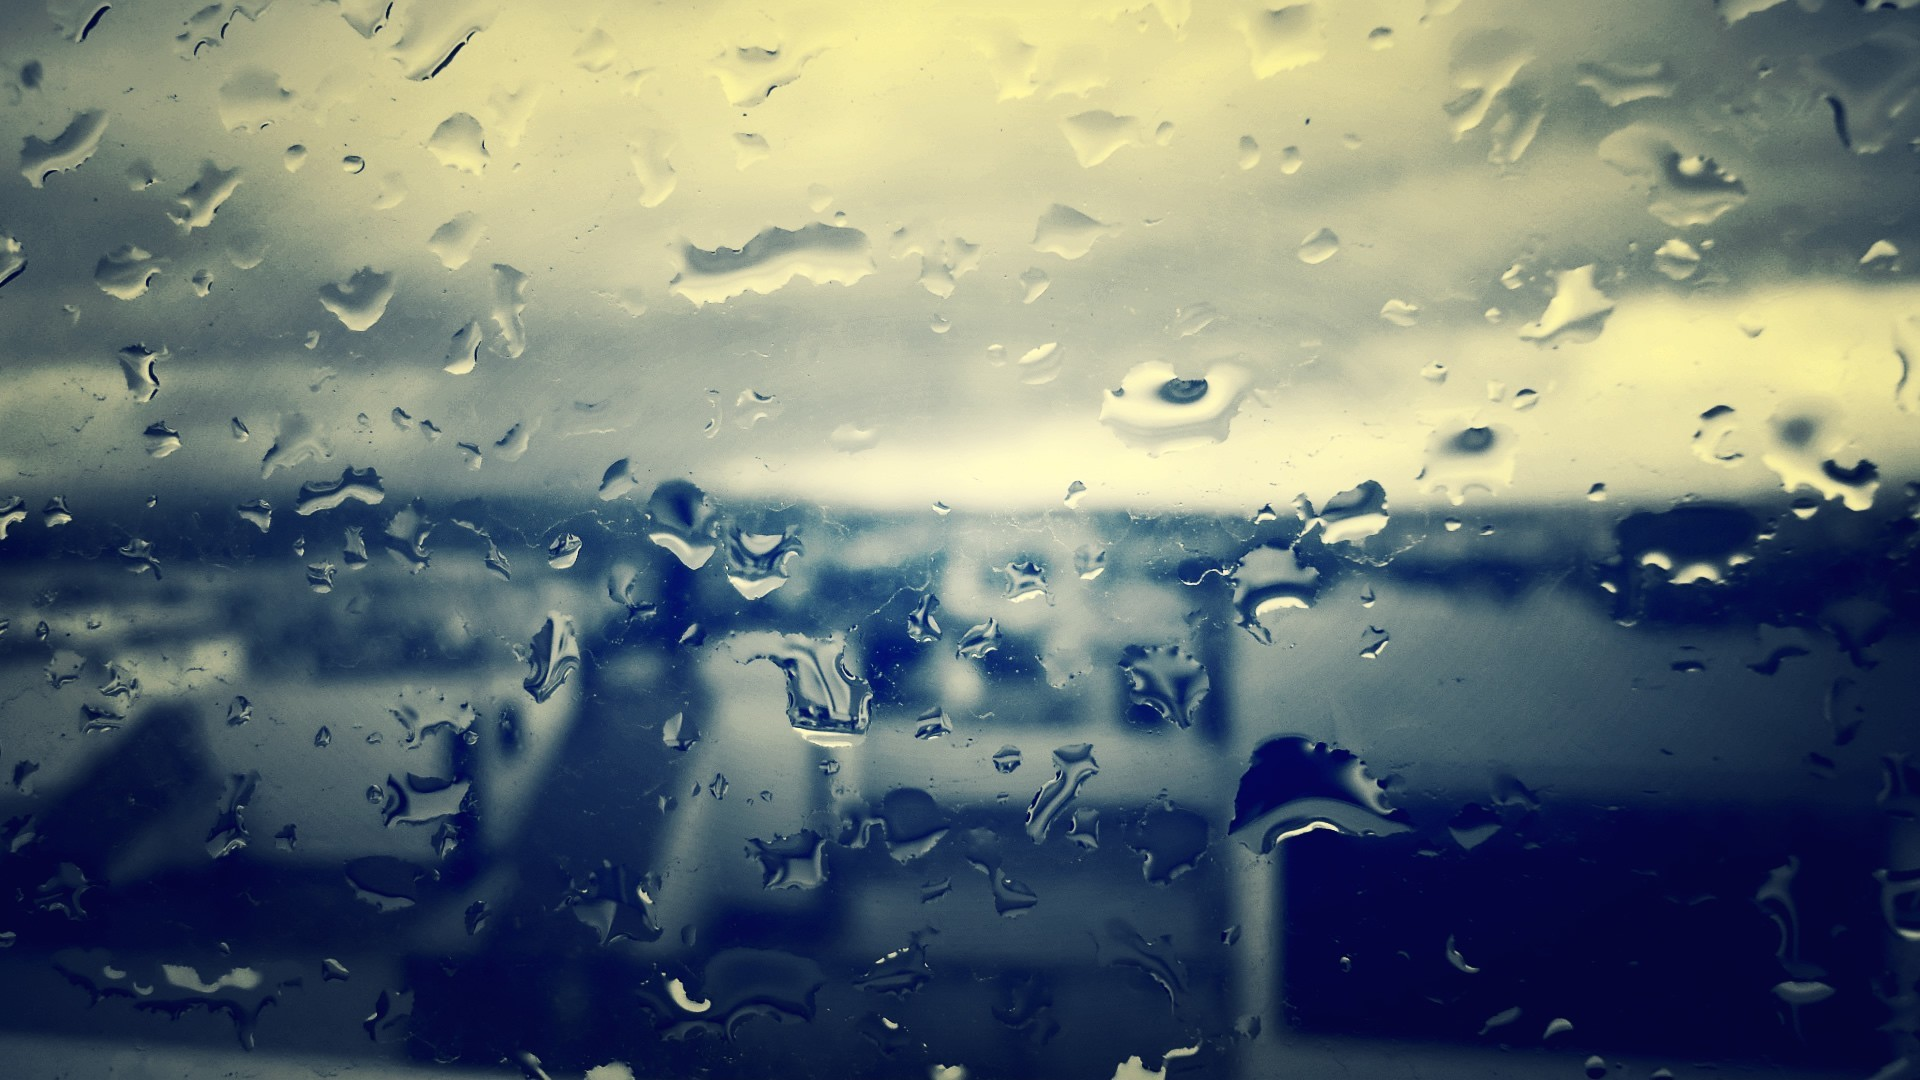 Fantastic Wallpaper High Quality Rainy Day - 770131-rainy-day-background-1920x1080-for-full-hd  Collection_444064.jpg